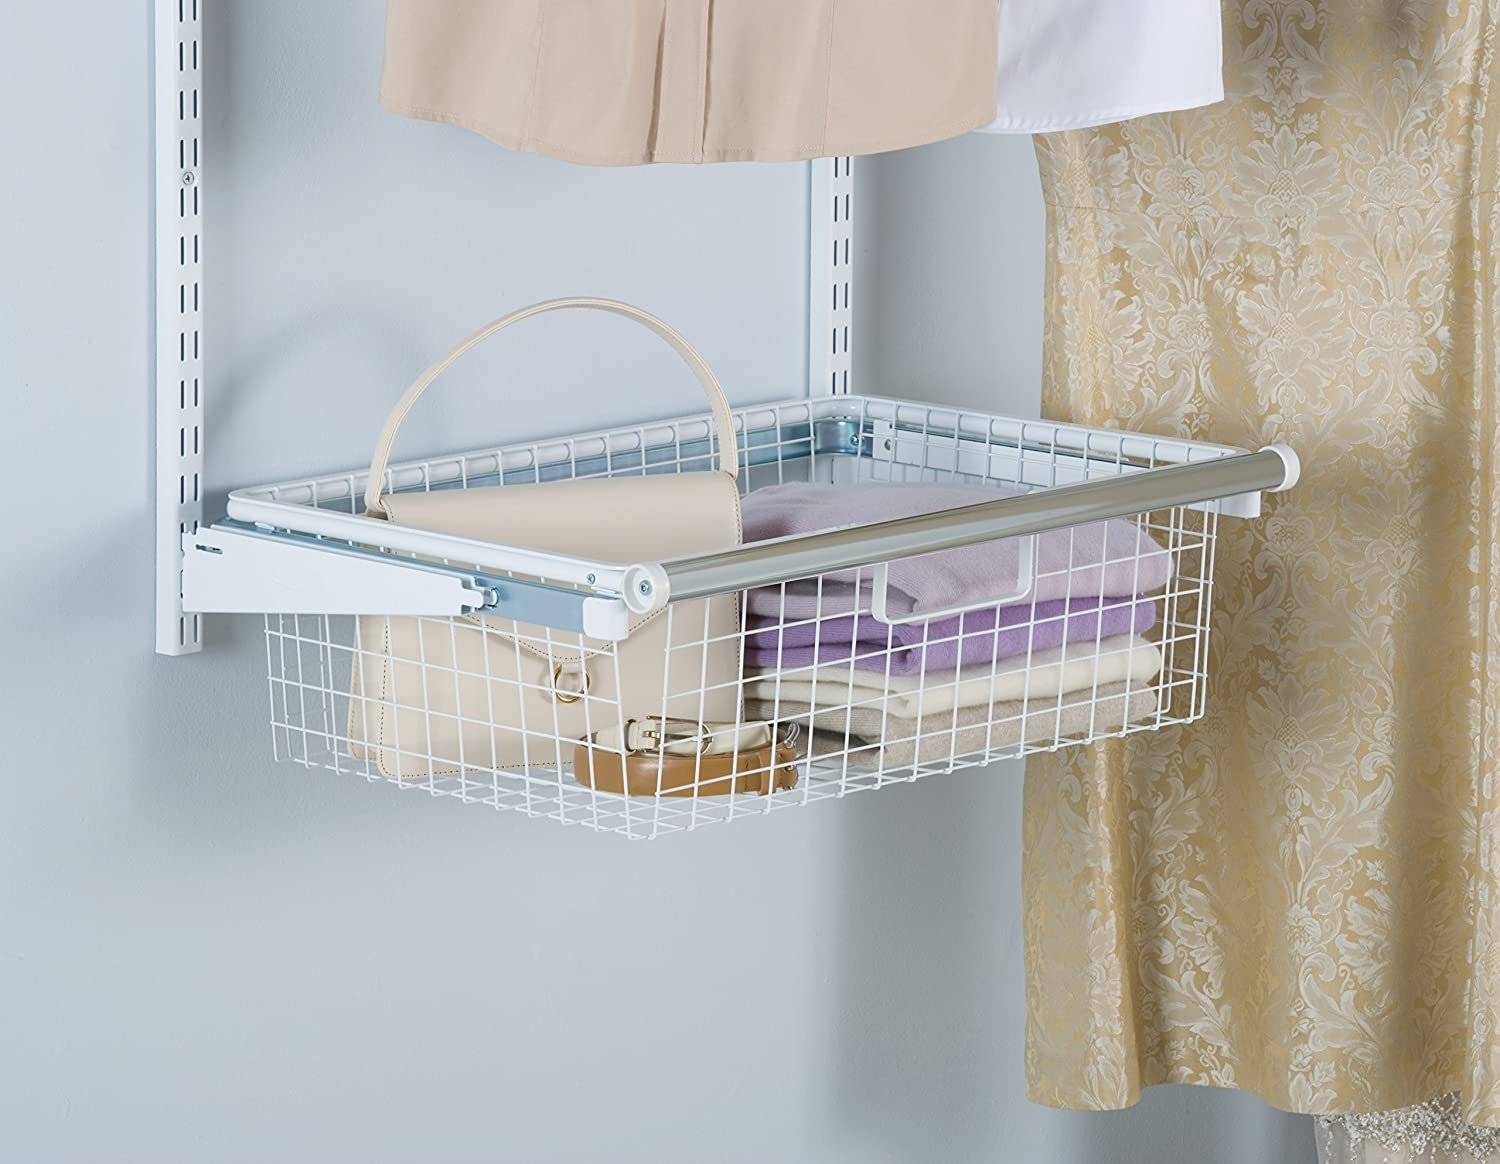 Attirant Amazon.com: Rubbermaid FG3J0503WHT Configurations Sliding Basket   White:  Home U0026 Kitchen